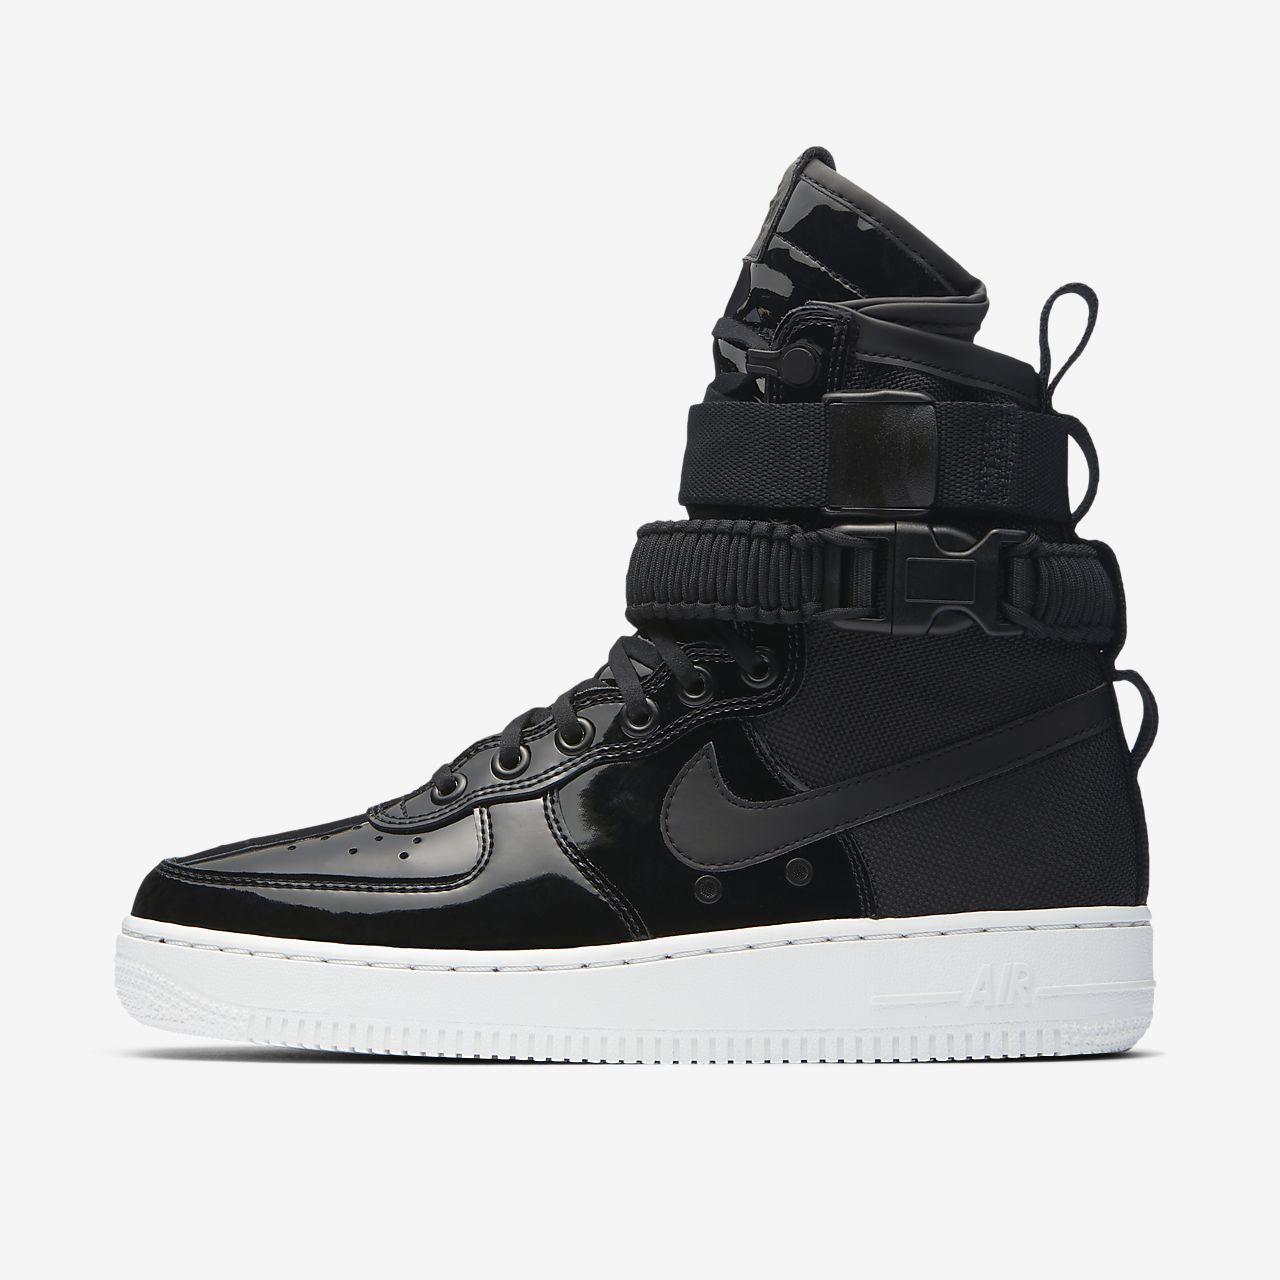 air force 1 6.5 nz